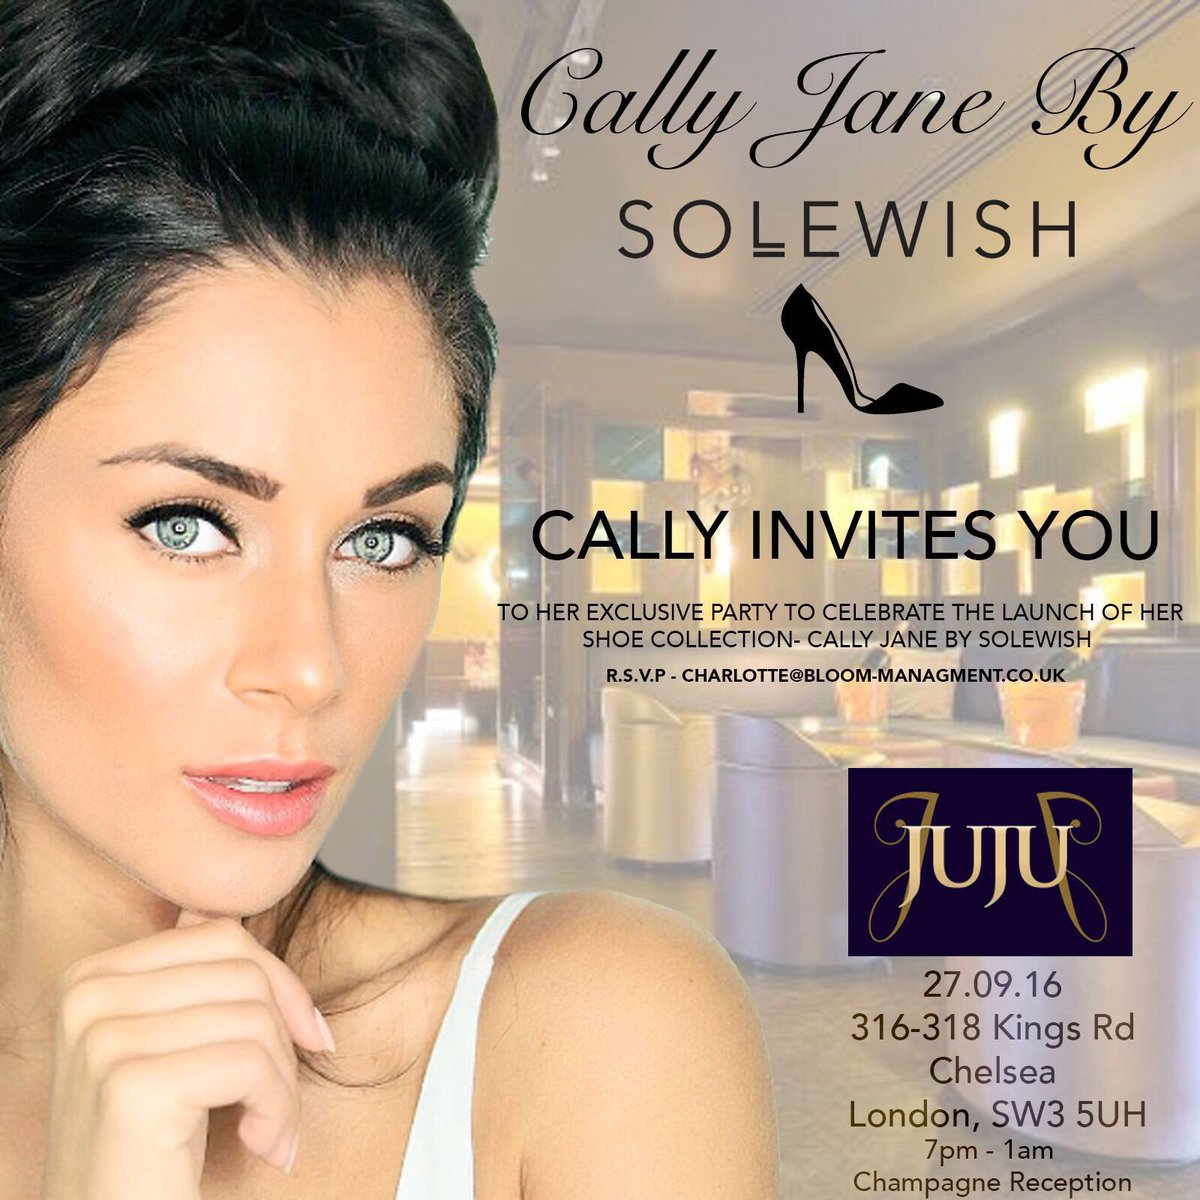 Tuesday 27th September @MissCallyJane launches her exclusive shoe range @collection_cj @JuJuKingsRoad #SoleWish